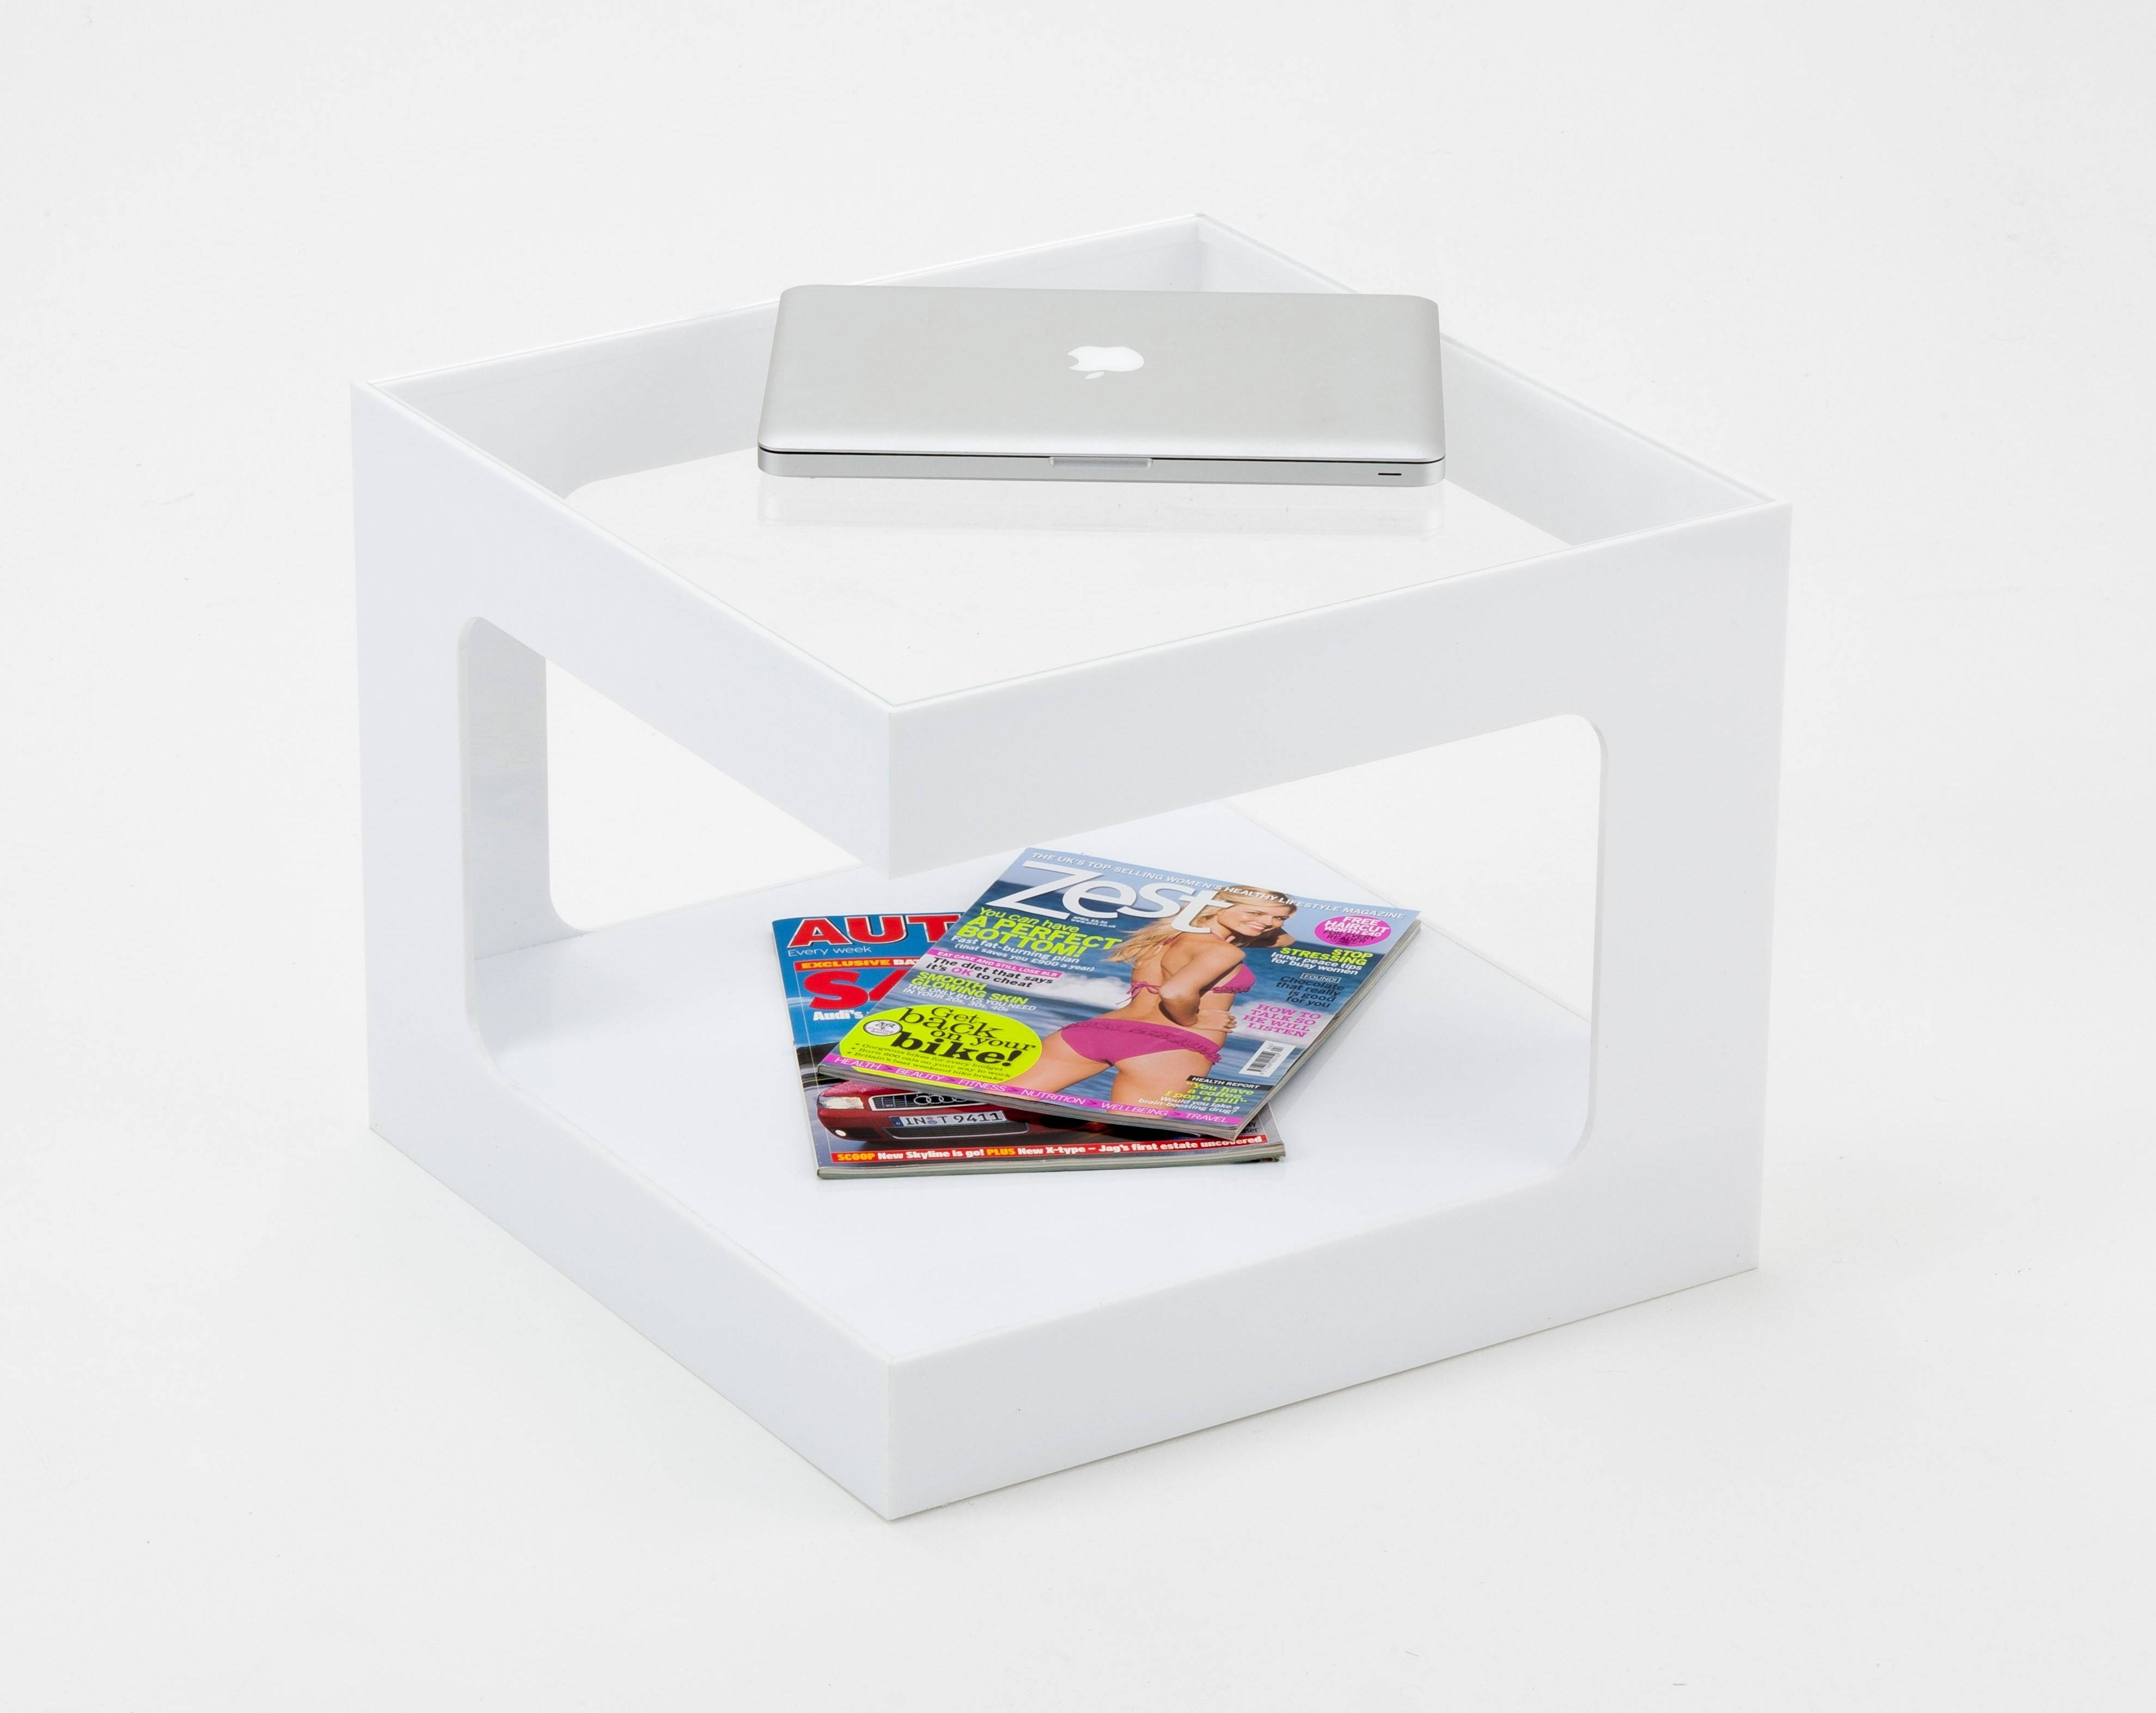 Small Square Clear Acrylic Coffee Table With Magazine Rack for Acrylic Coffee Tables With Magazine Rack (Image 30 of 30)